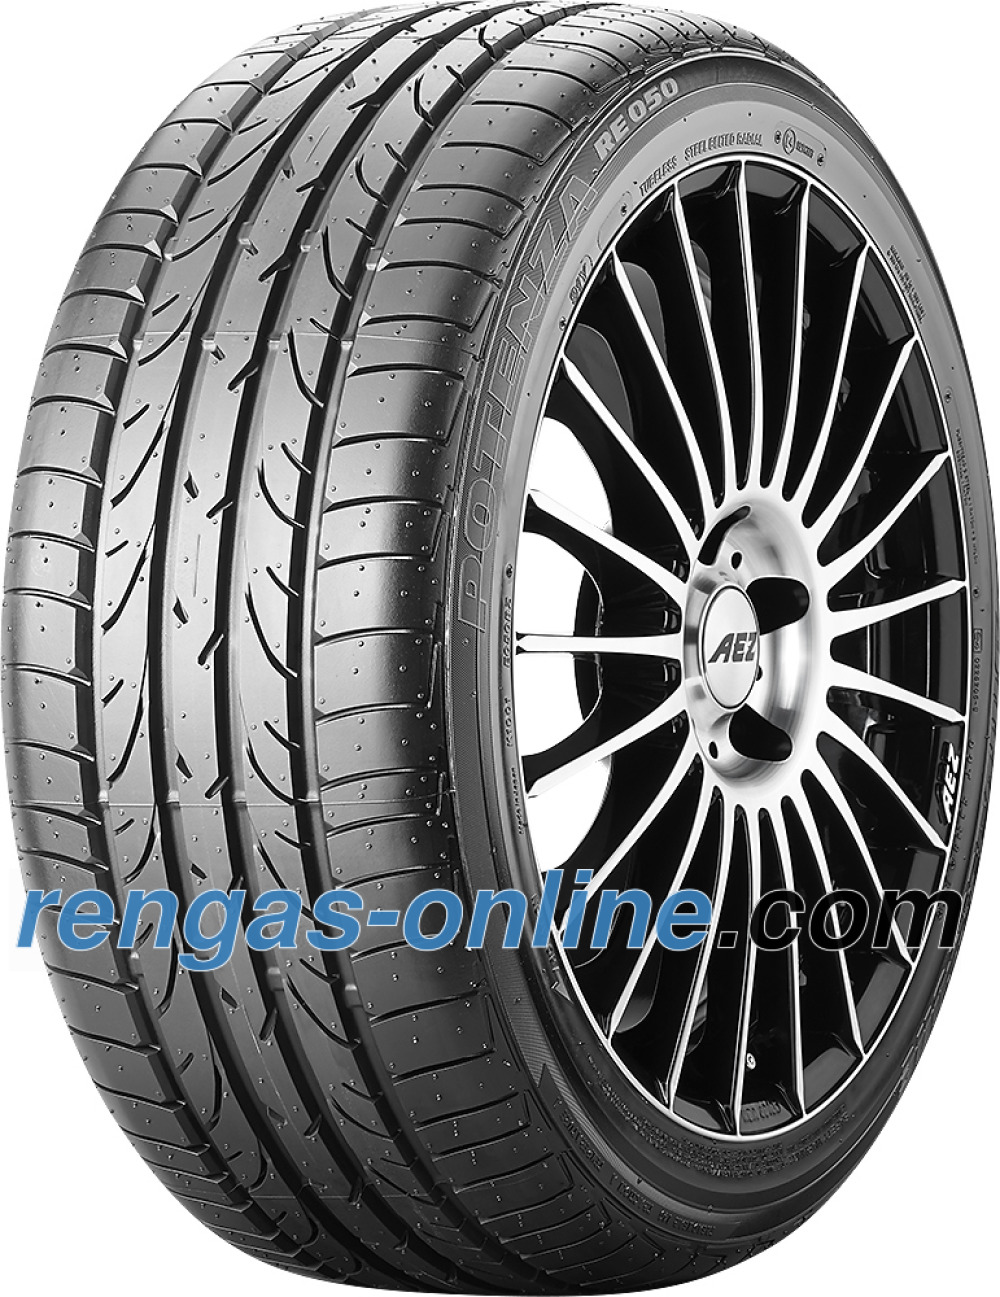 bridgestone-potenza-re-050-27540-zr19-zr-xl-mo